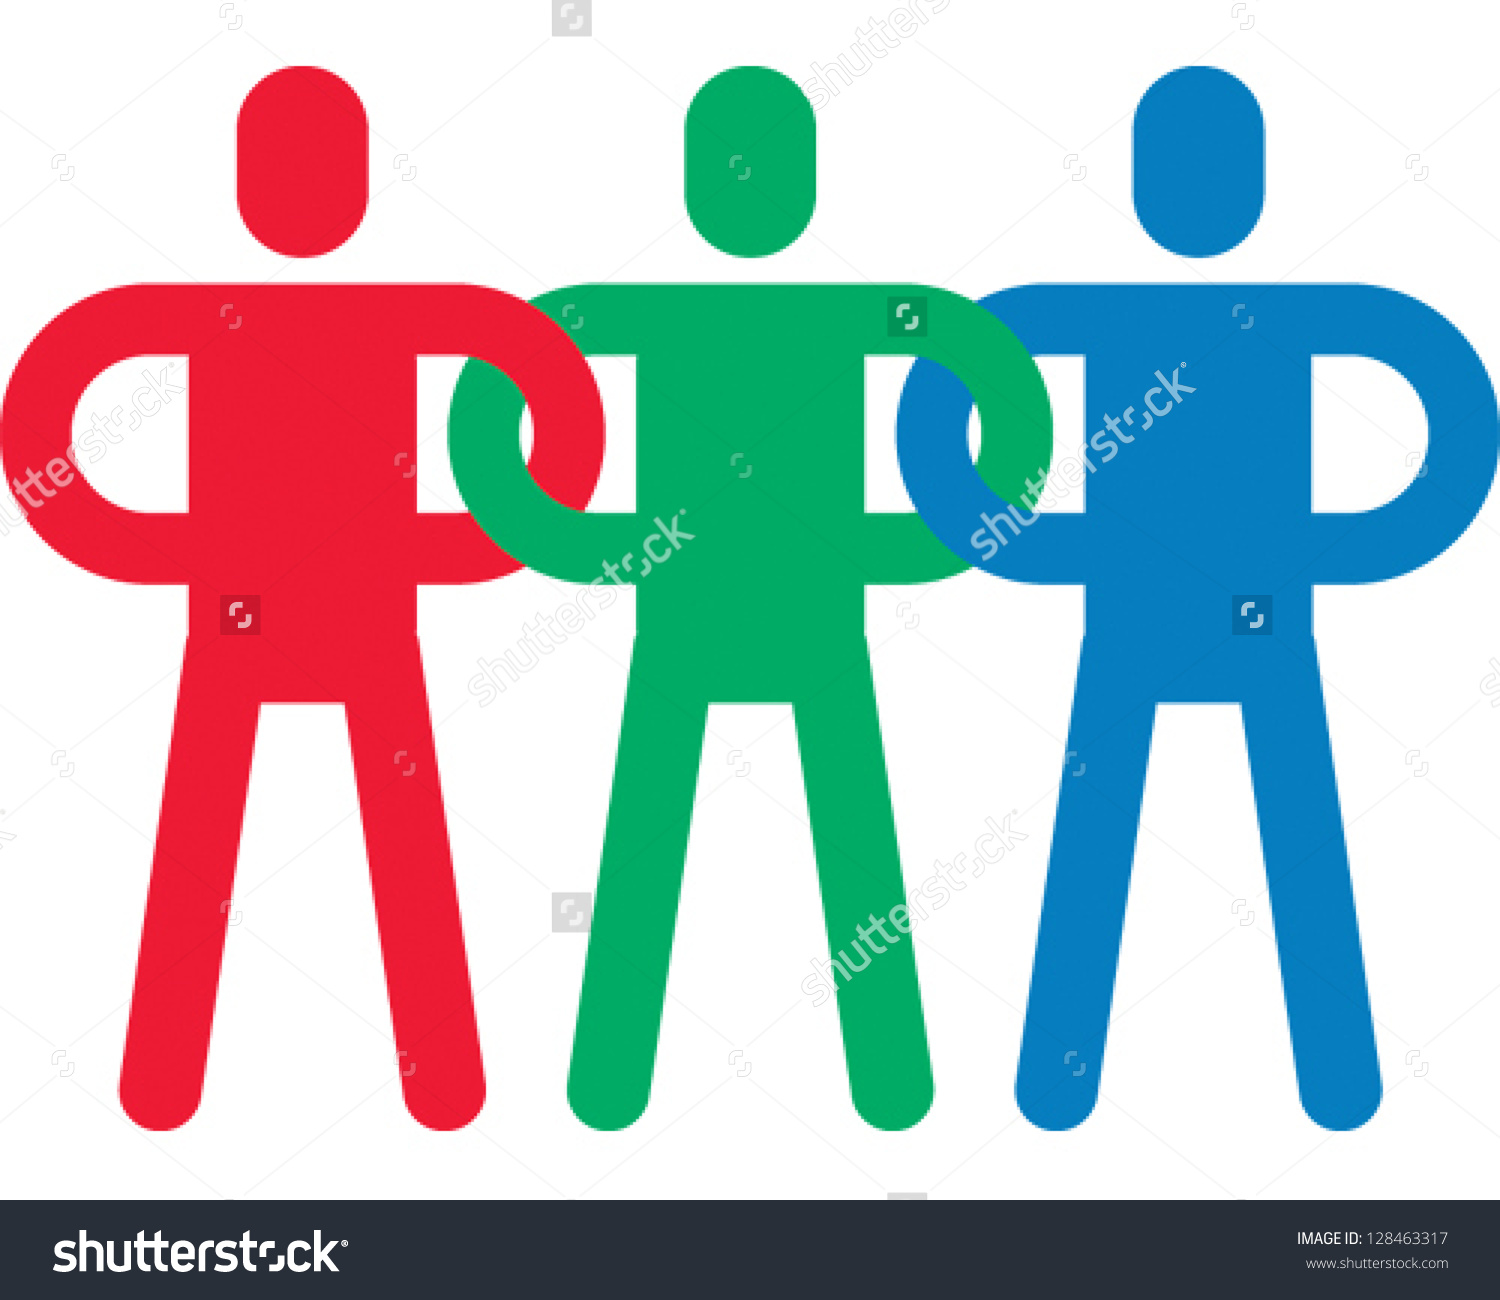 Linking Arms Clipart.